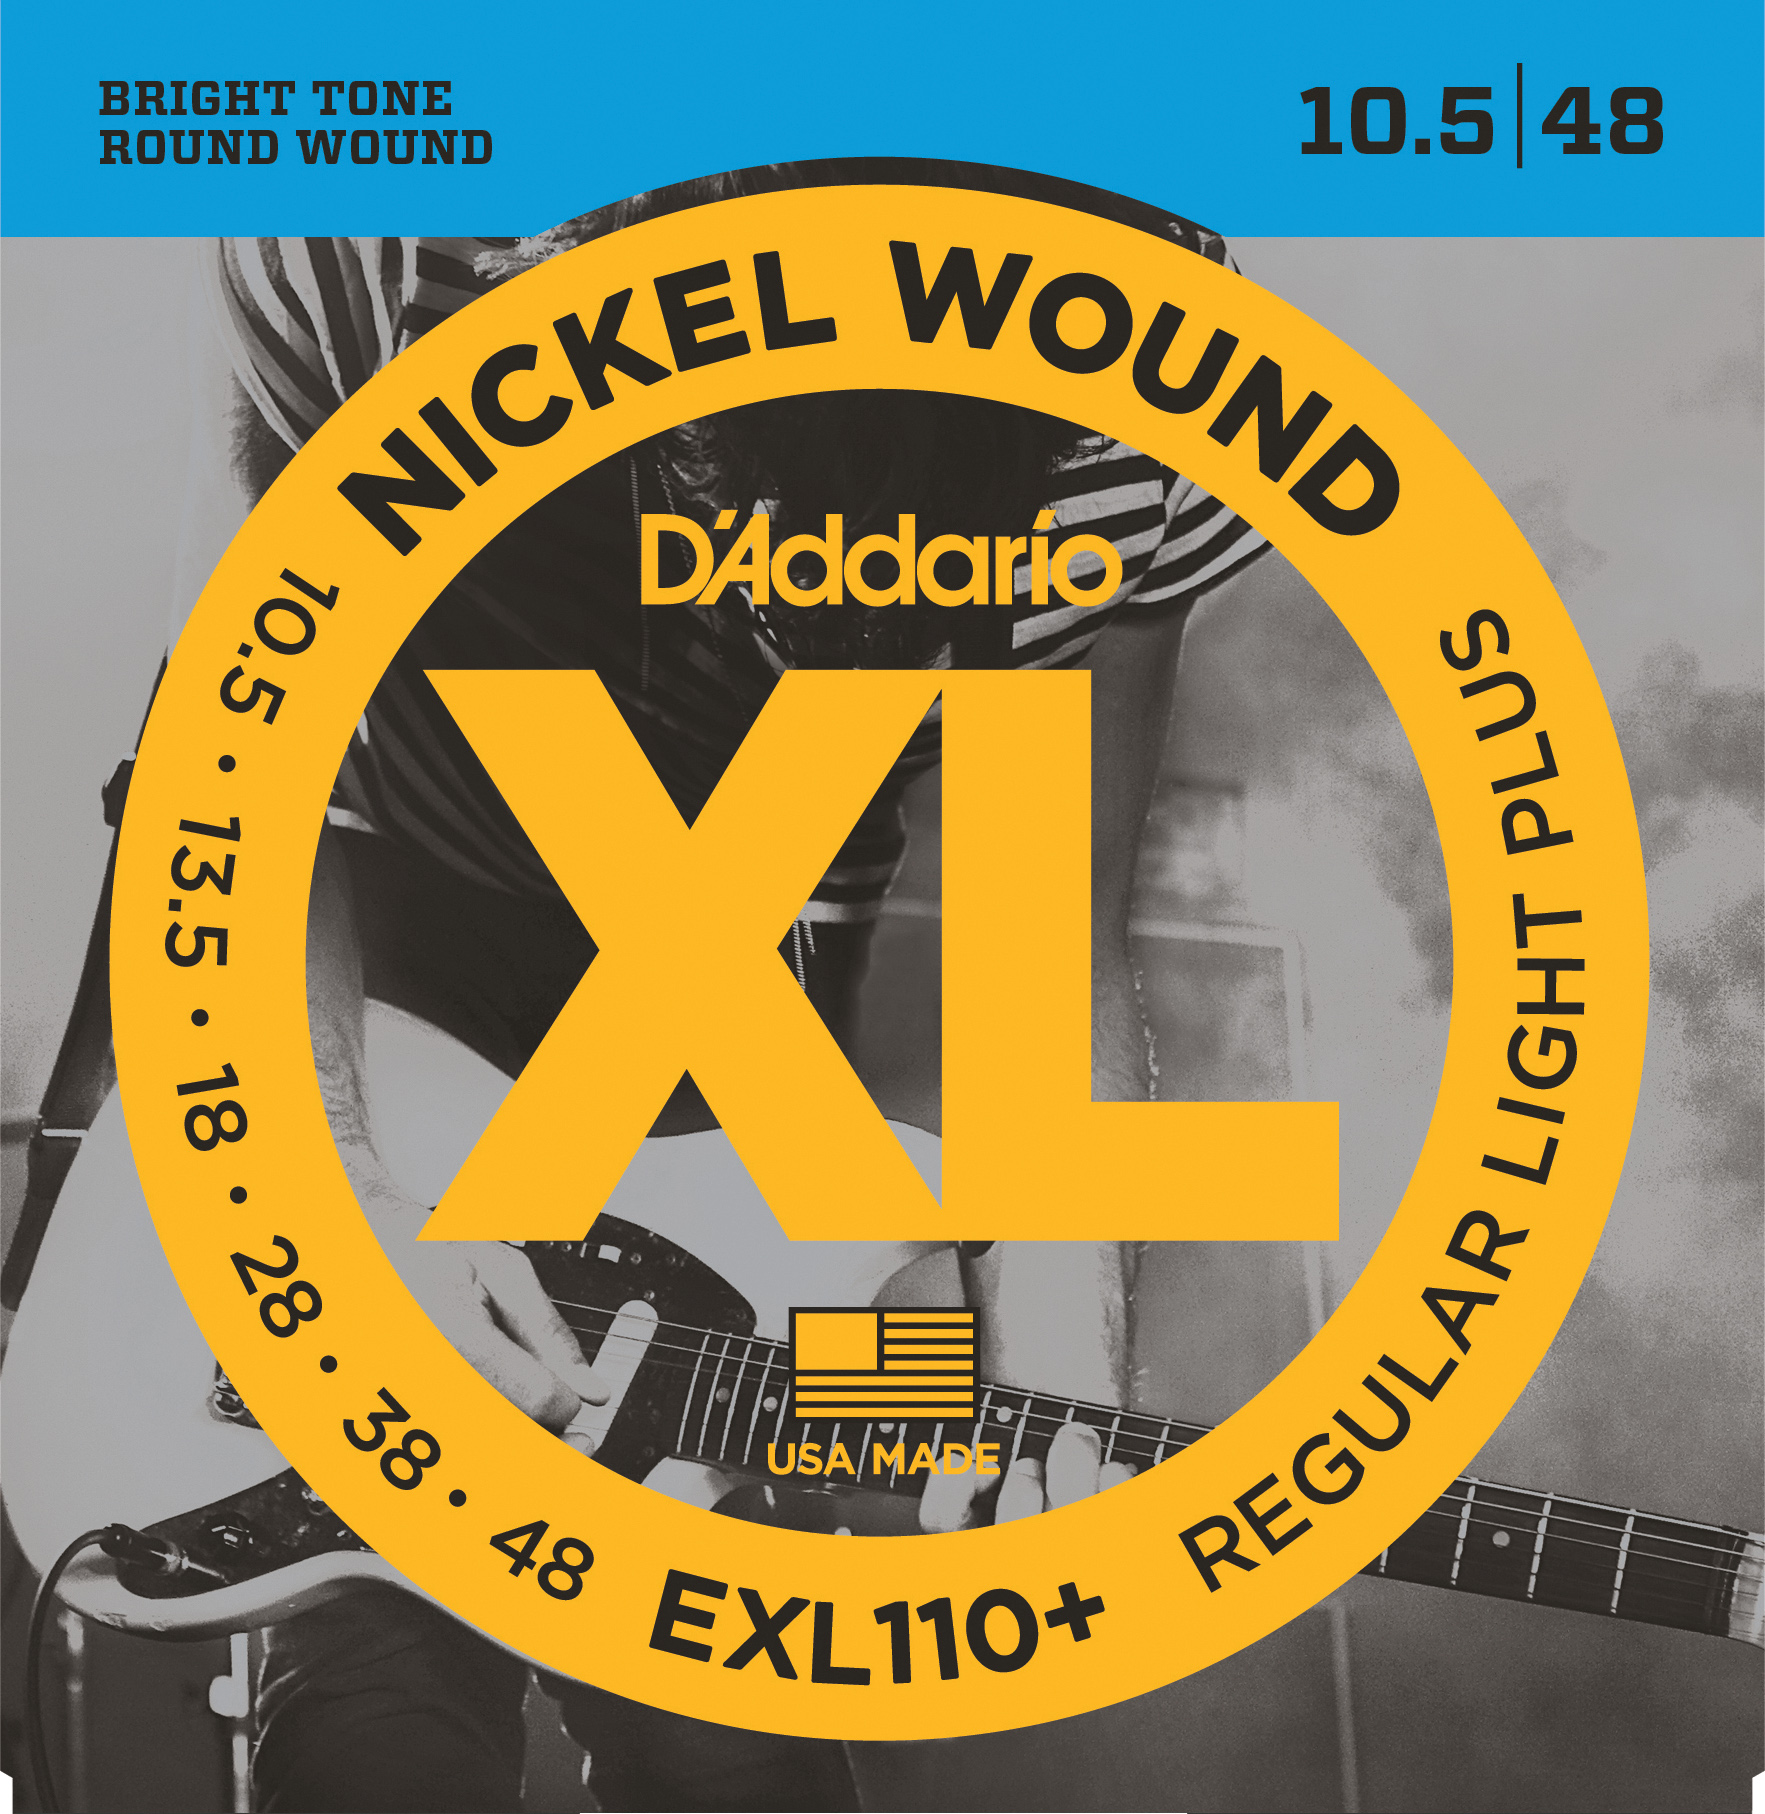 D'Addario EXL110+ Nickel Wound Electric Guitar Strings, Regular Light Plus, 10.5...